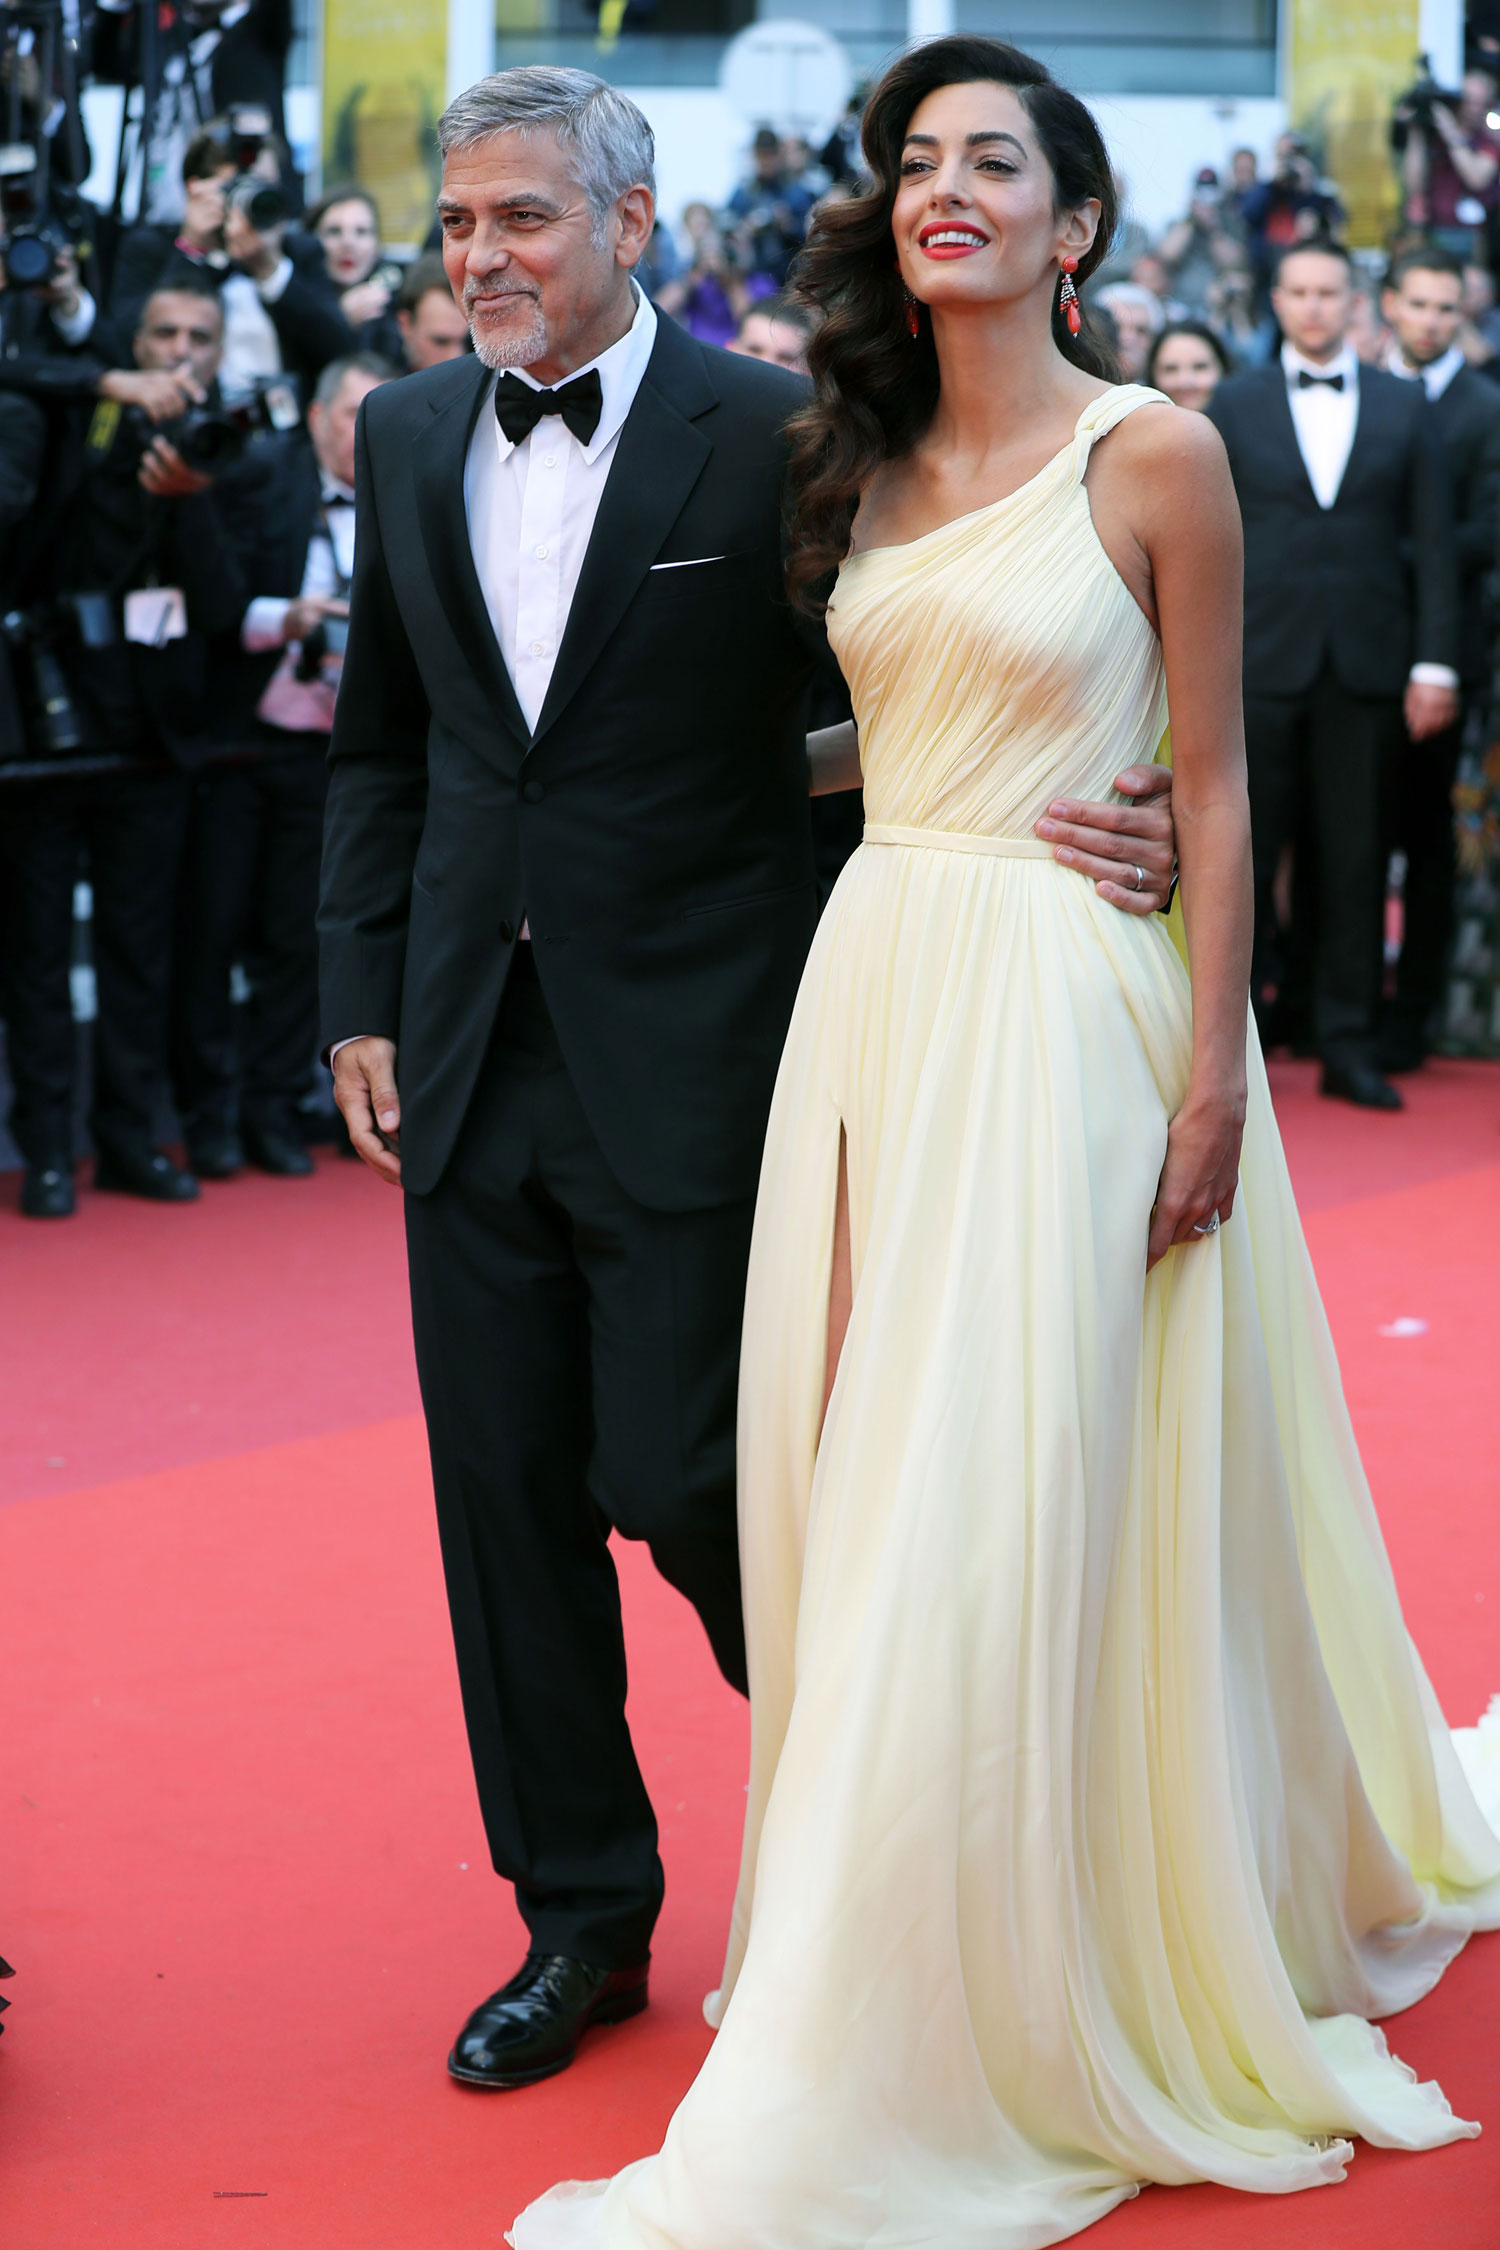 Amal Clooney On The Red Carpet Of Cannes In Atelier